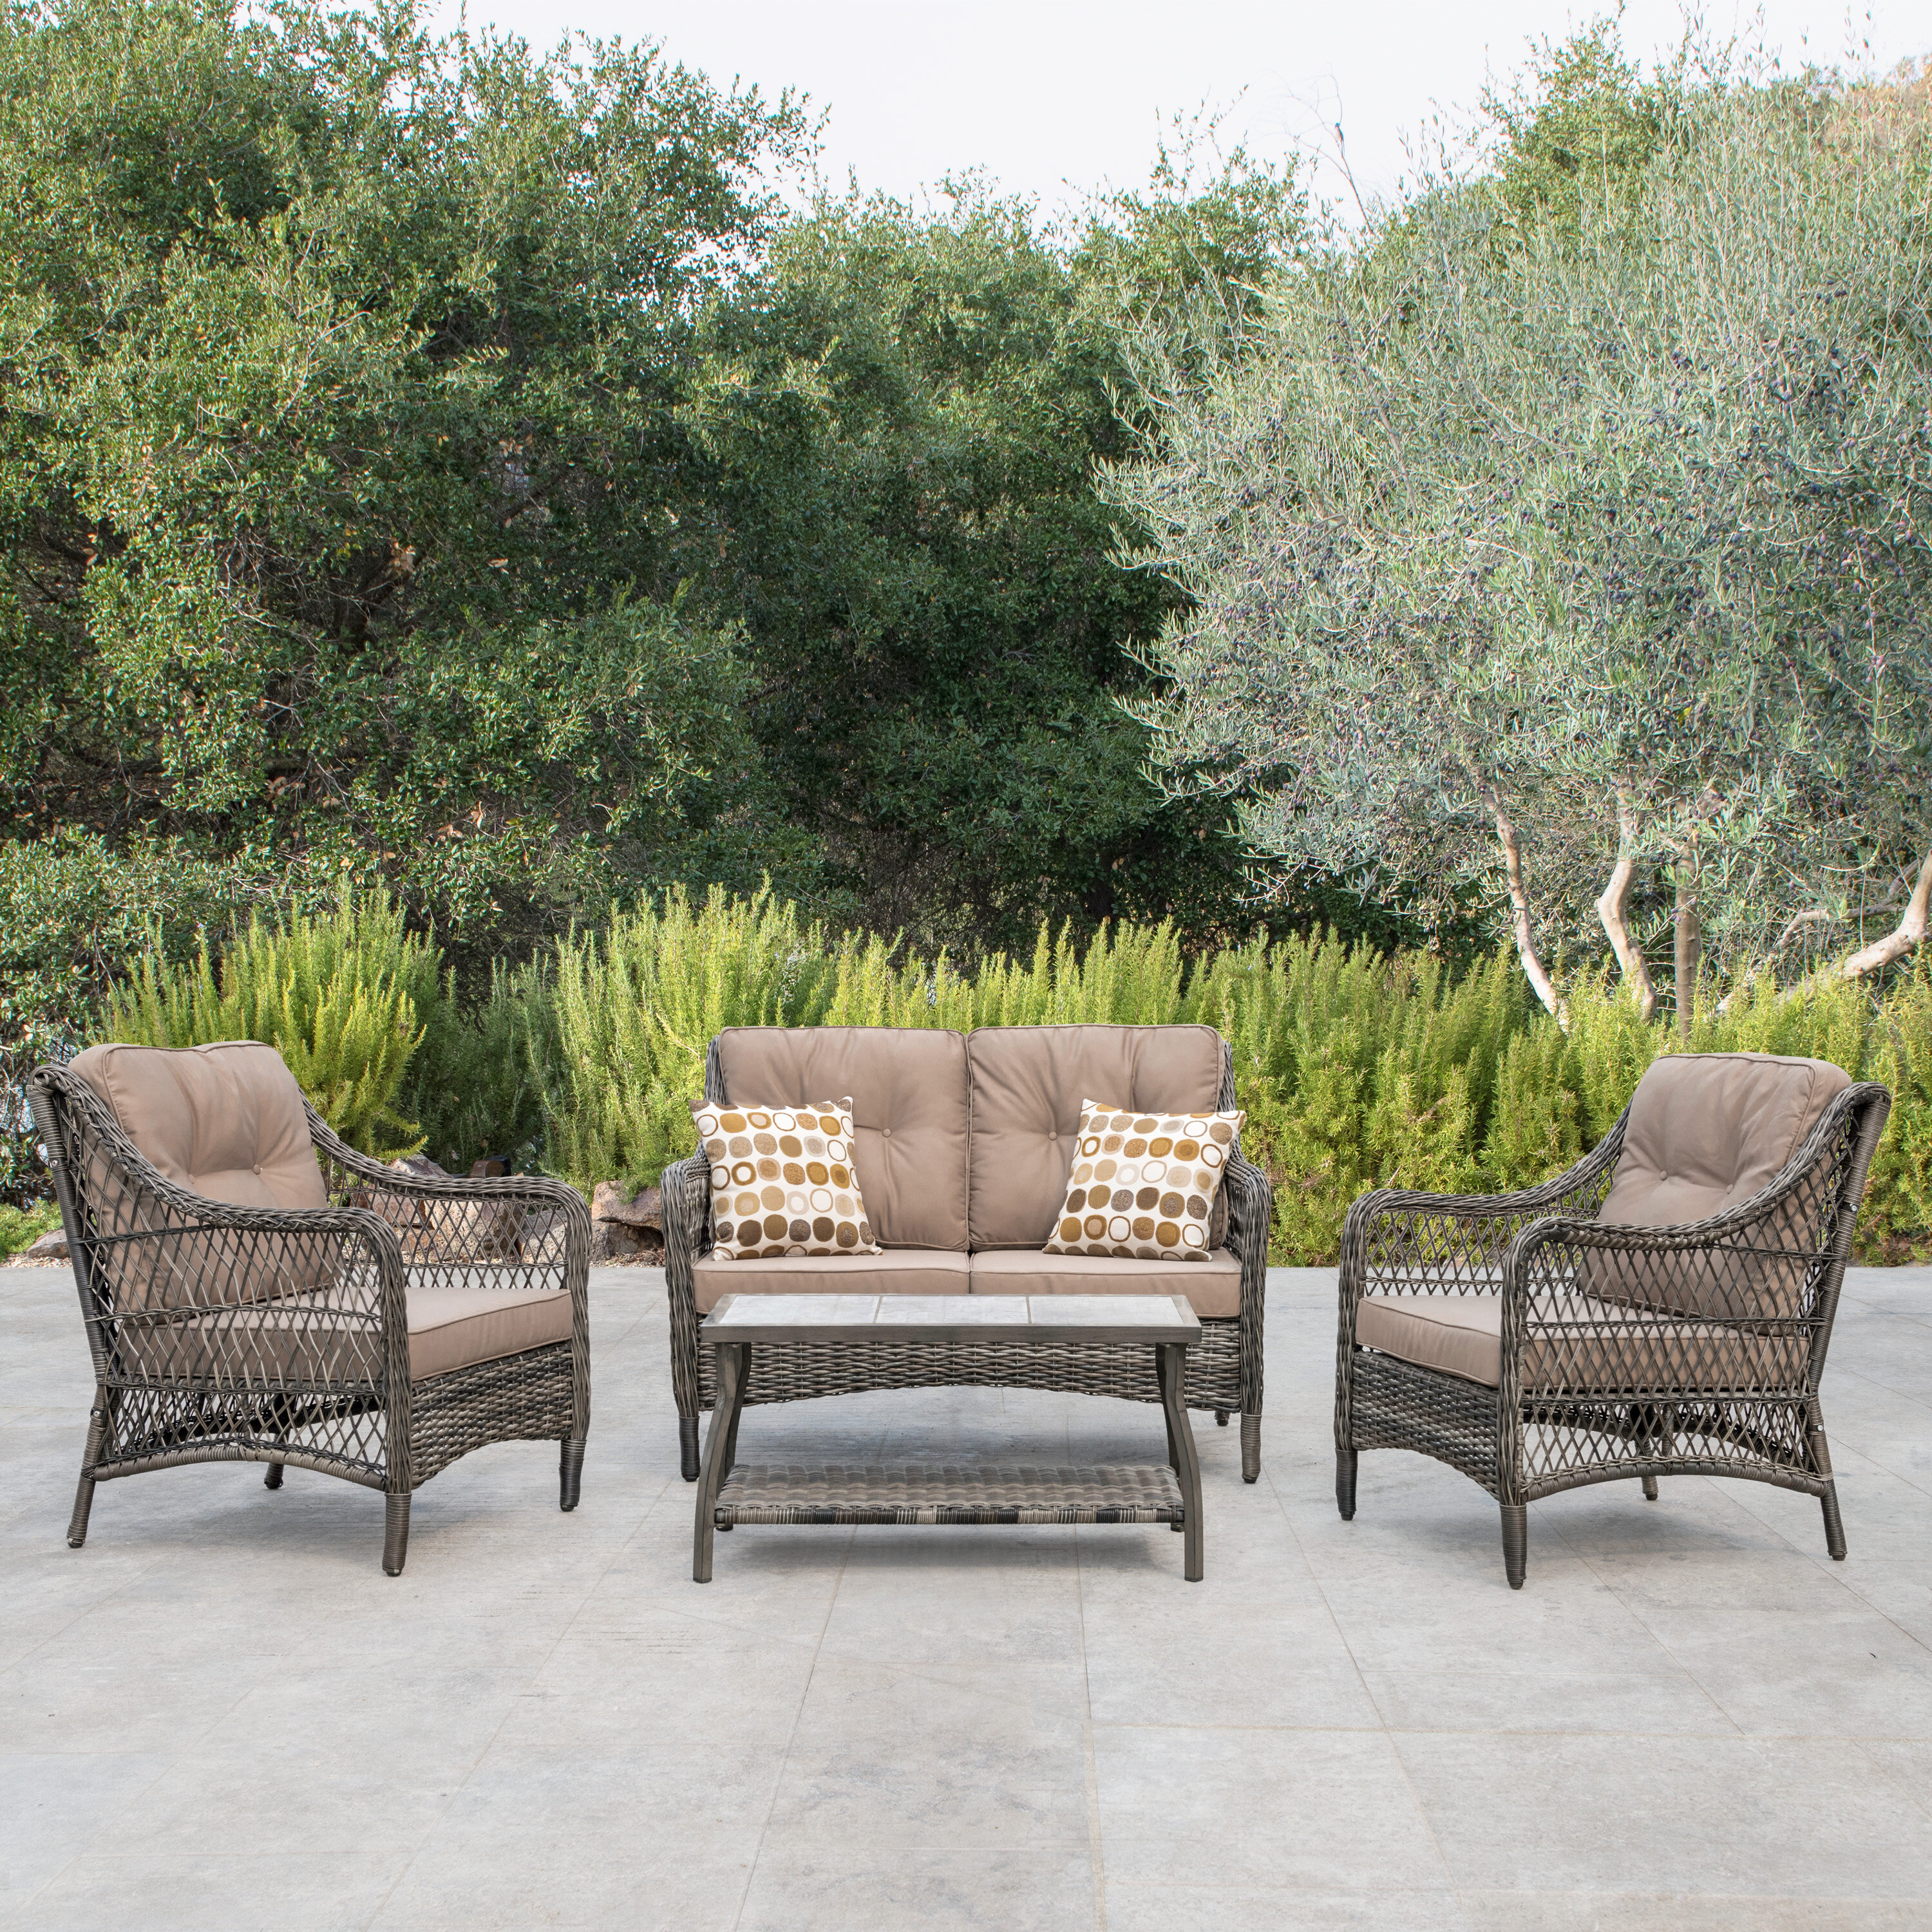 Bay Isle Home Pelletier 5 Piece Rattan Sofa Seating Group With Cushions Reviews Wayfair